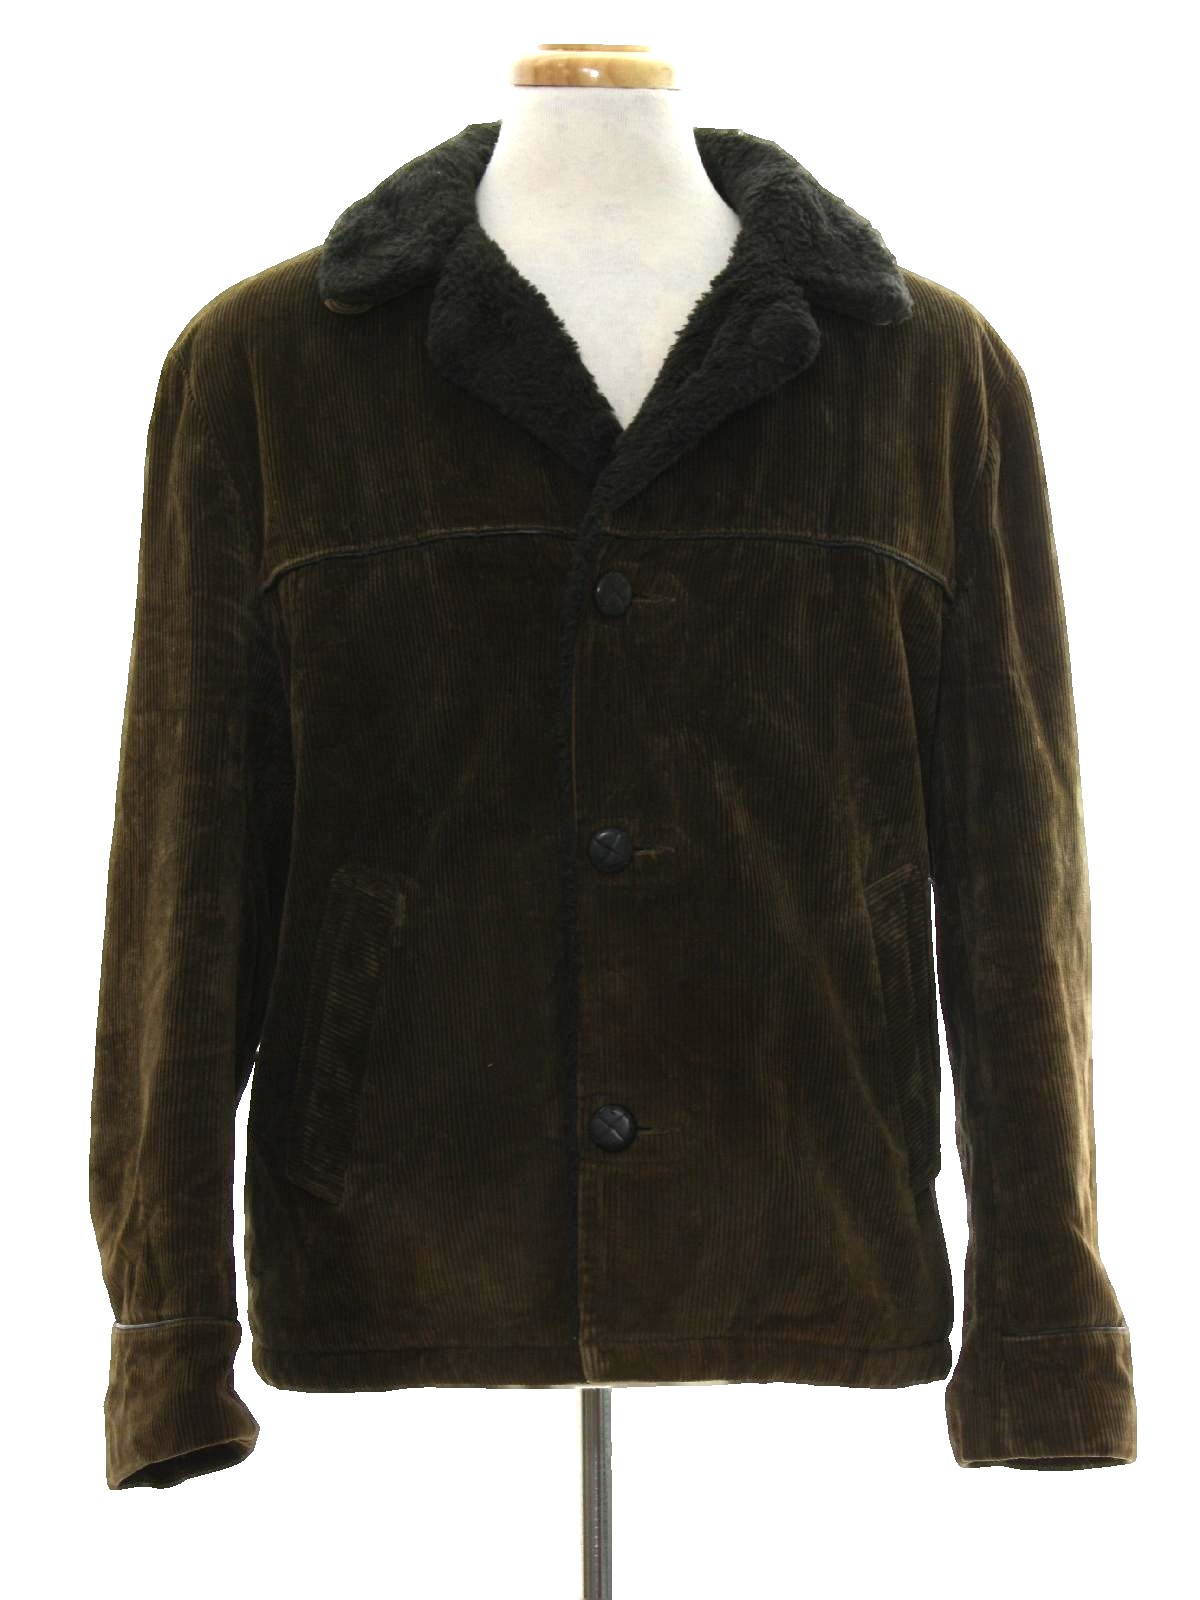 Retro 1970 S Jacket Styled For Students By Sears 70s